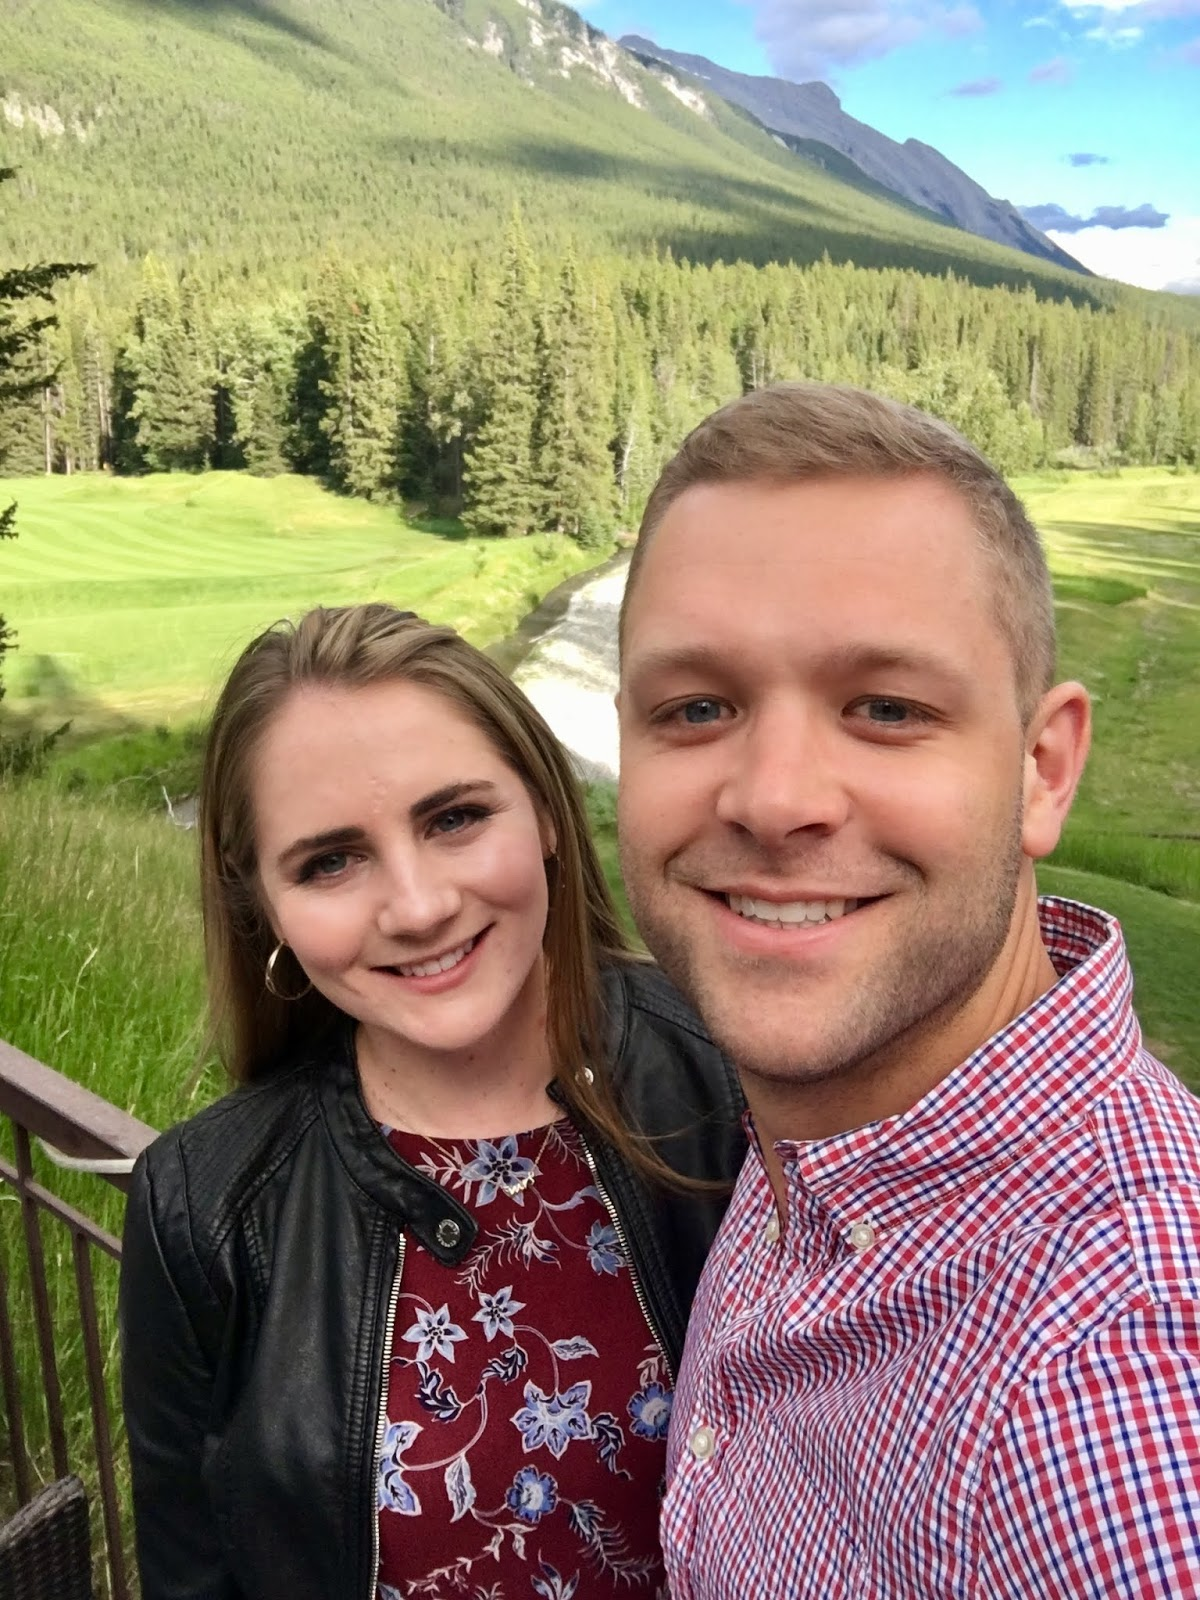 travel tips for your trip to banff | what to know about banff before you go | a memory of us blog | lessons learned from our trip to banff | banff national park vacation